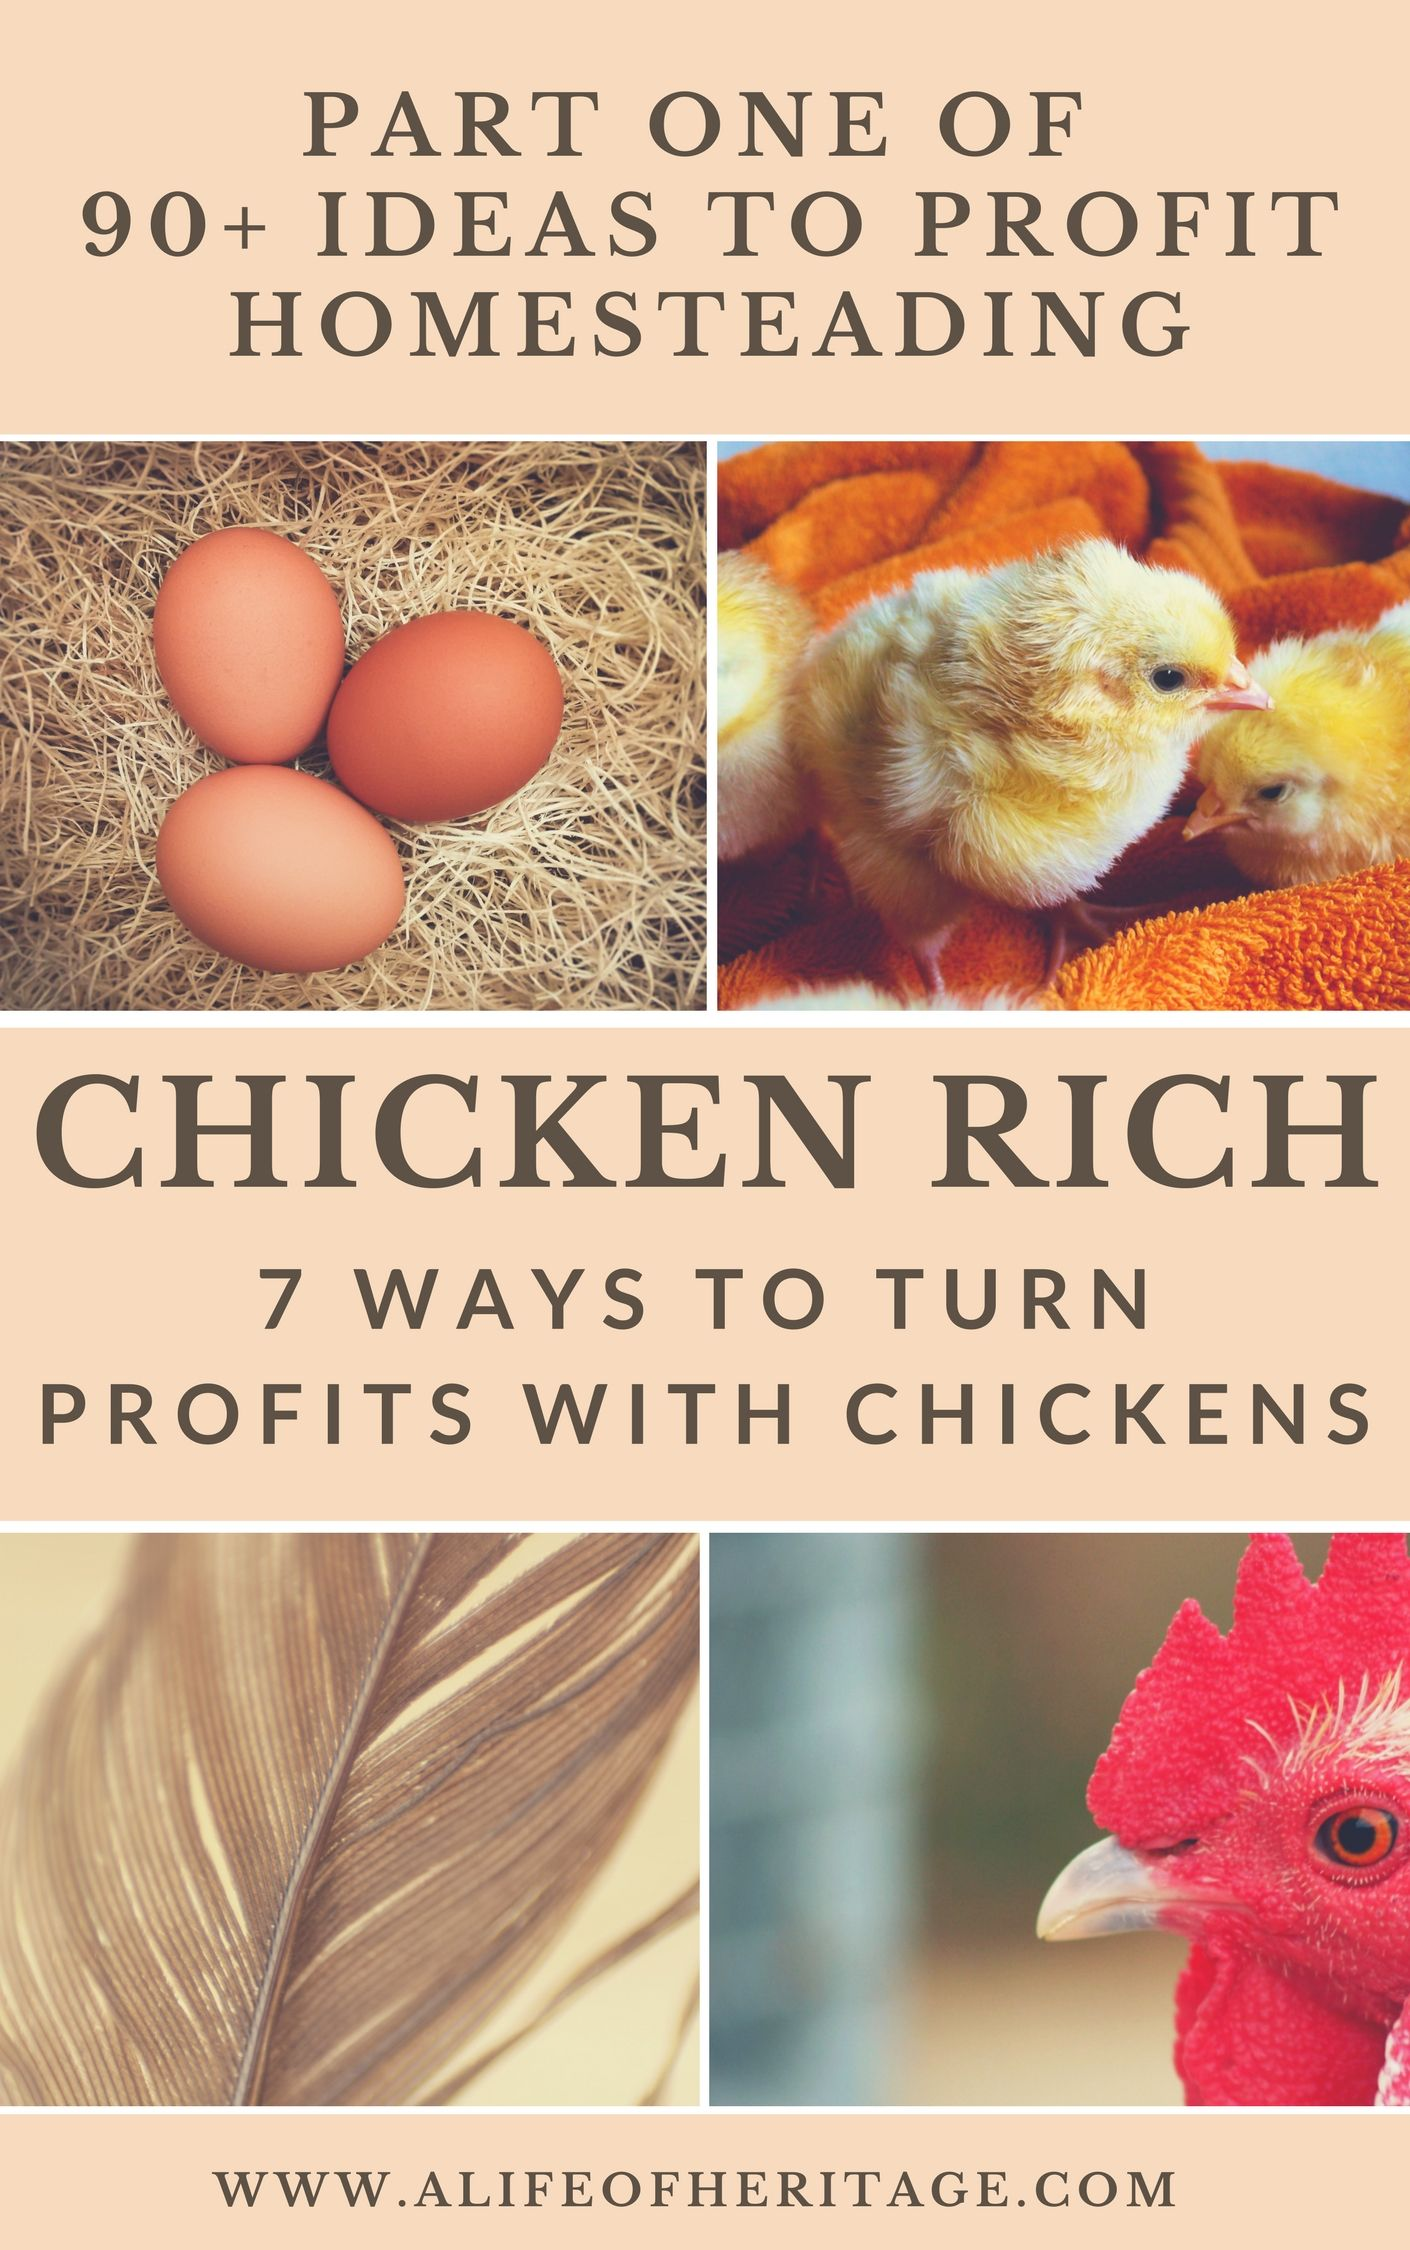 Chicken farming and how to make money with chickens. 7 detailed ideas on how to get started!